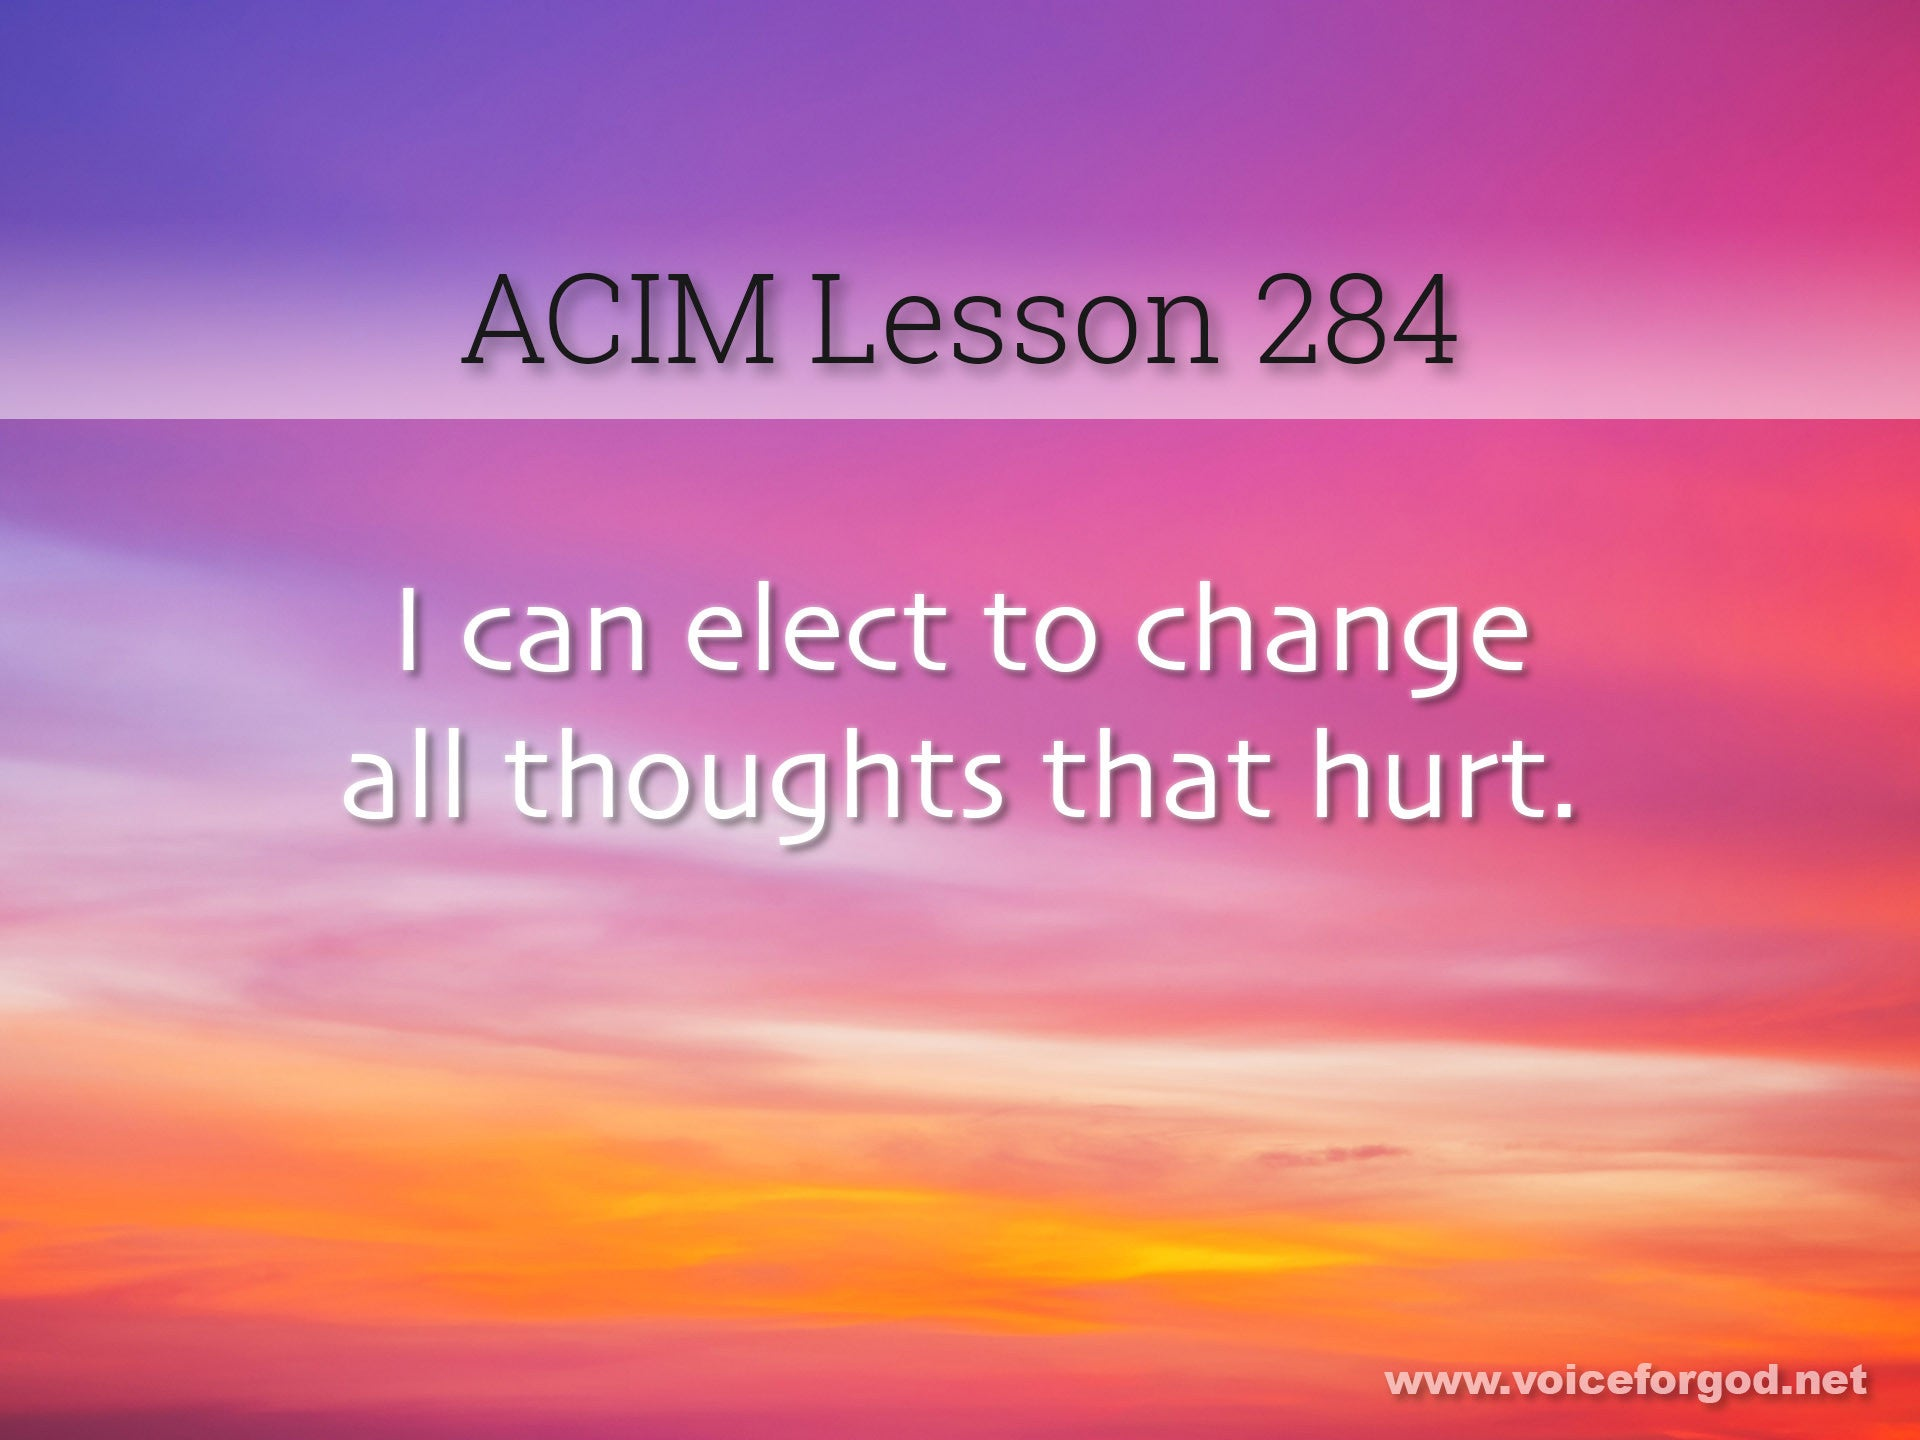 ACIM Lesson 284 - A Course in Miracles Workbook Lesson 284